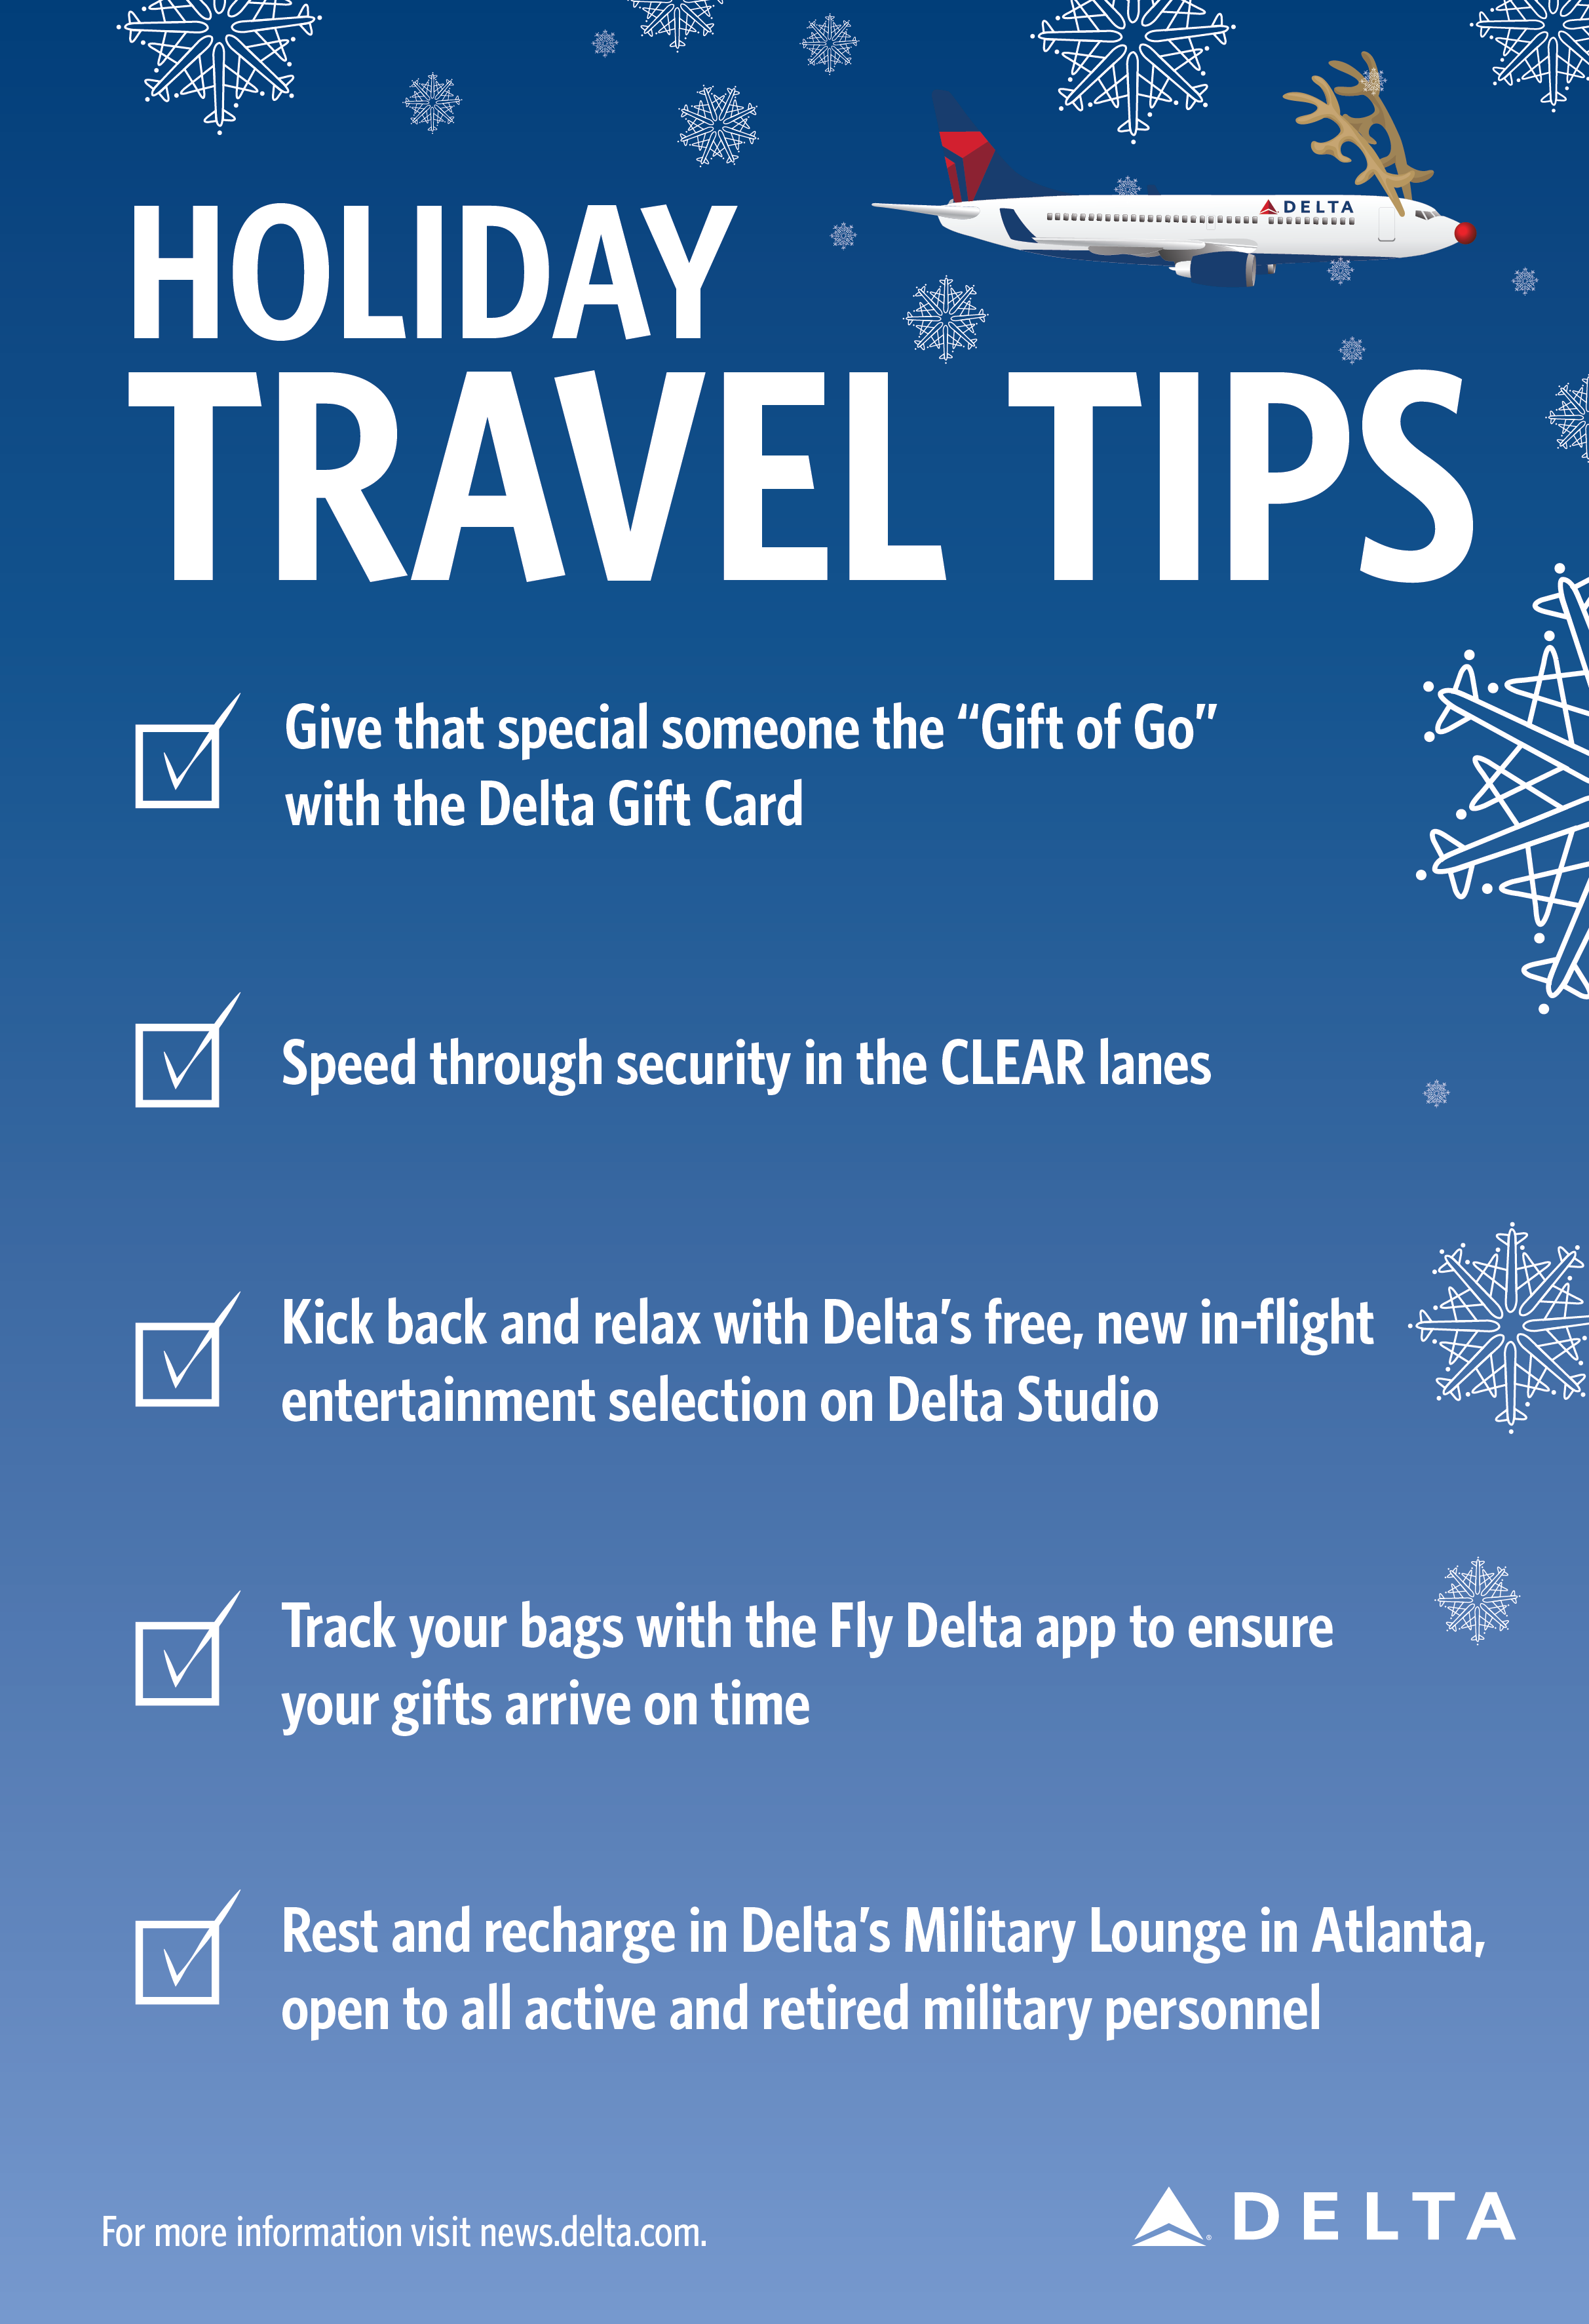 5 Travel Tips